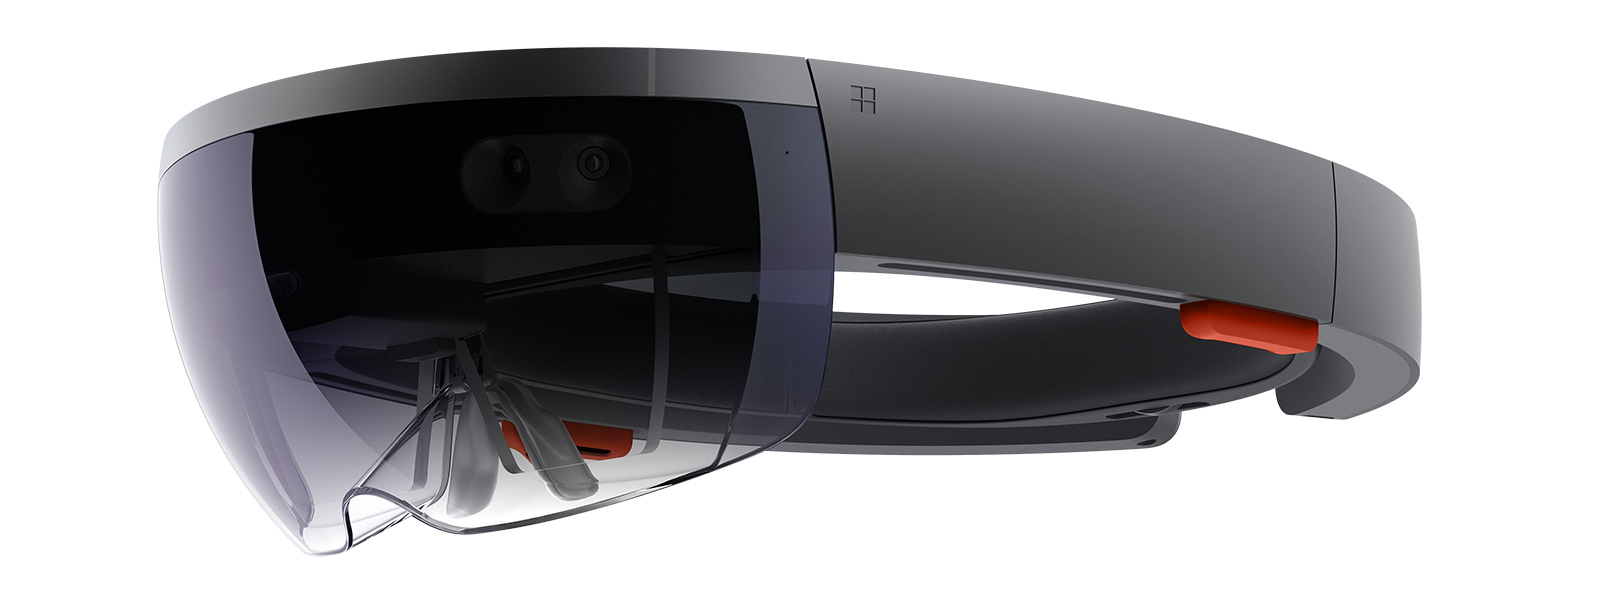 HoloLens as seen from the front left